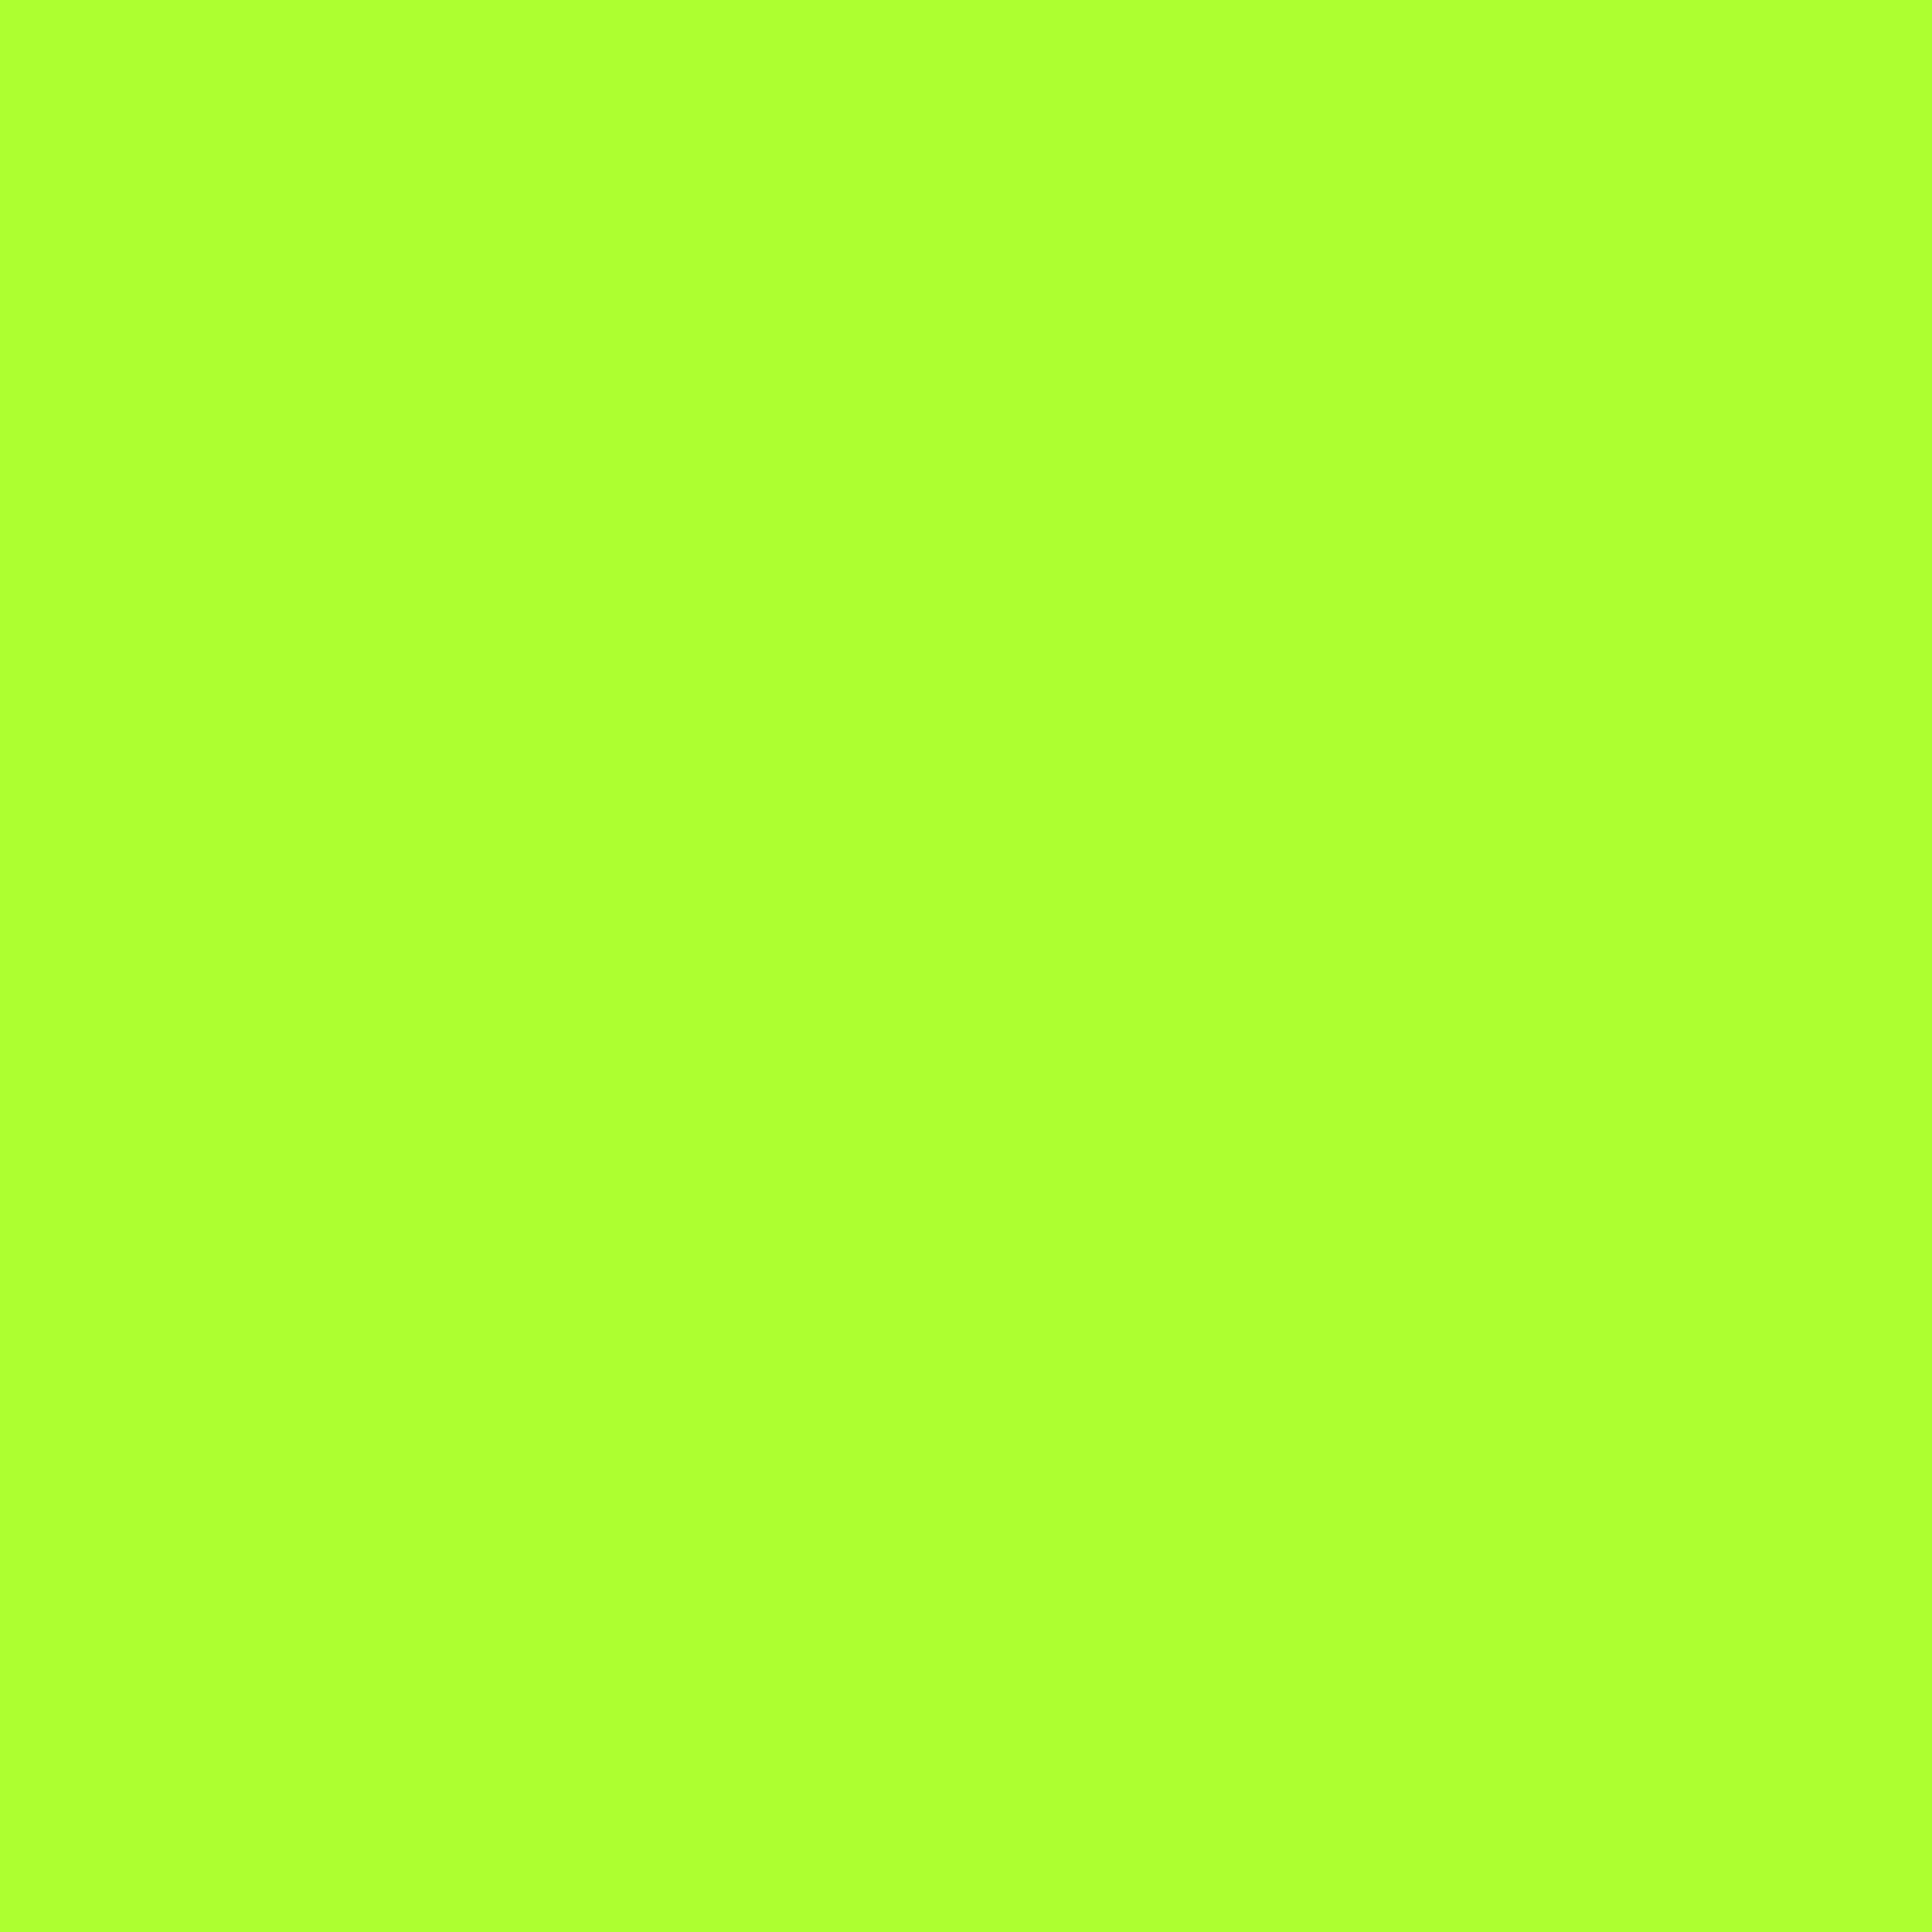 2048x2048 Green-yellow Solid Color Background